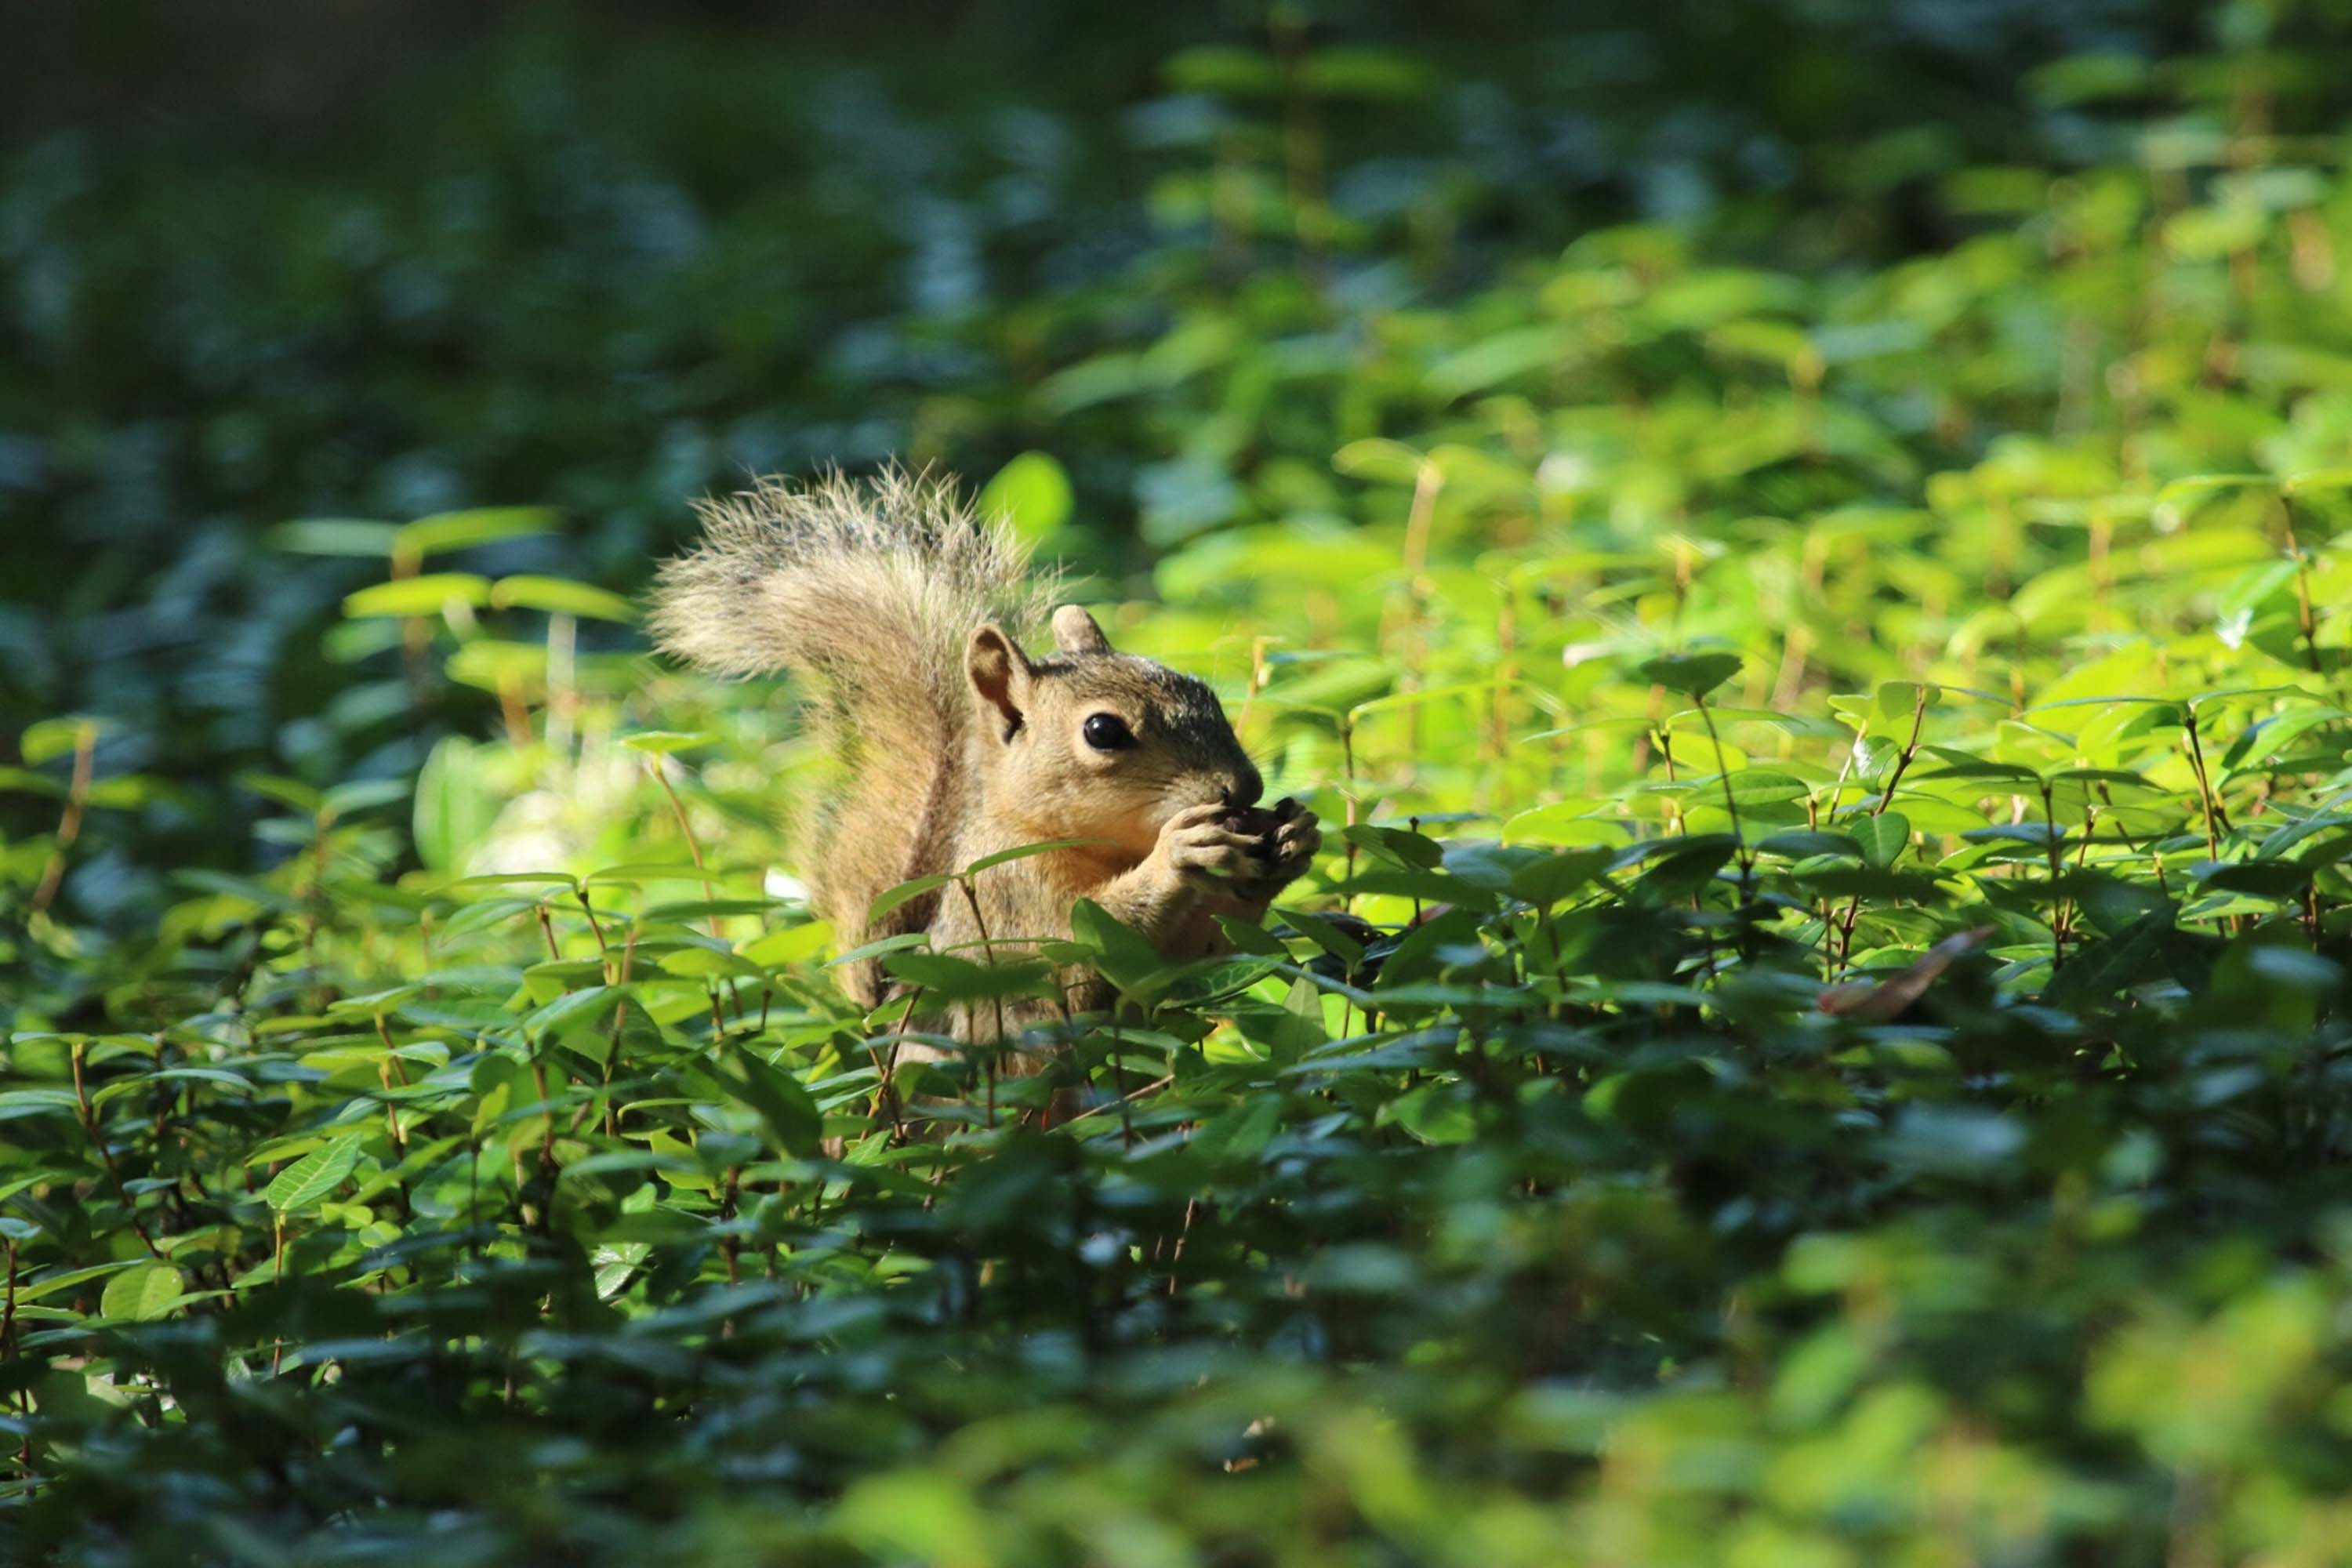 A squirrel with bushy tail in the patch of bright green jasmine near the Barbara Jordan statue.